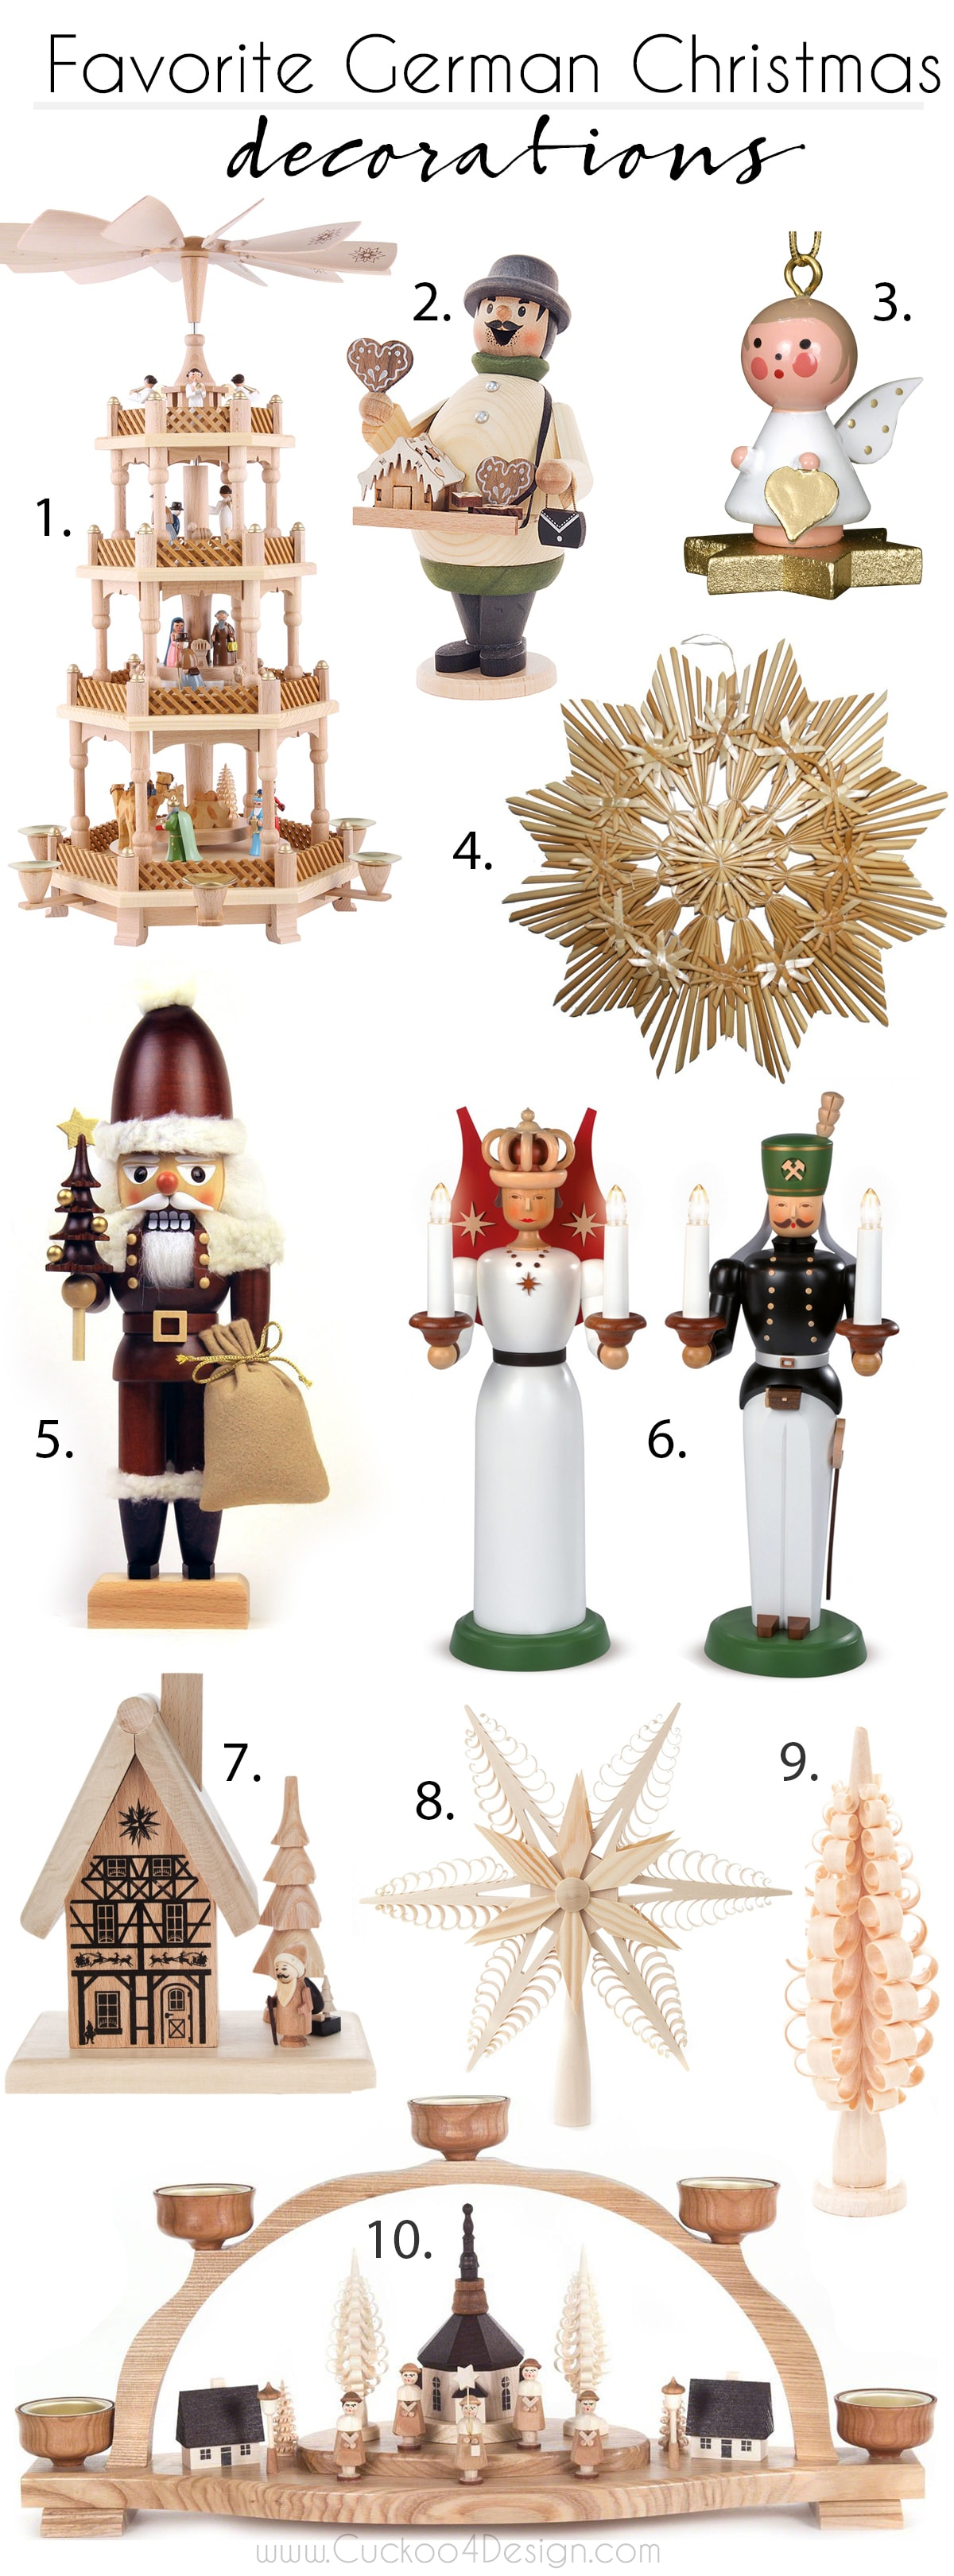 favorite German Christmas Decorations: candle arches, nut crackers, incense smokers, Christmas pyramids, shaved trees and star stars and ornaments